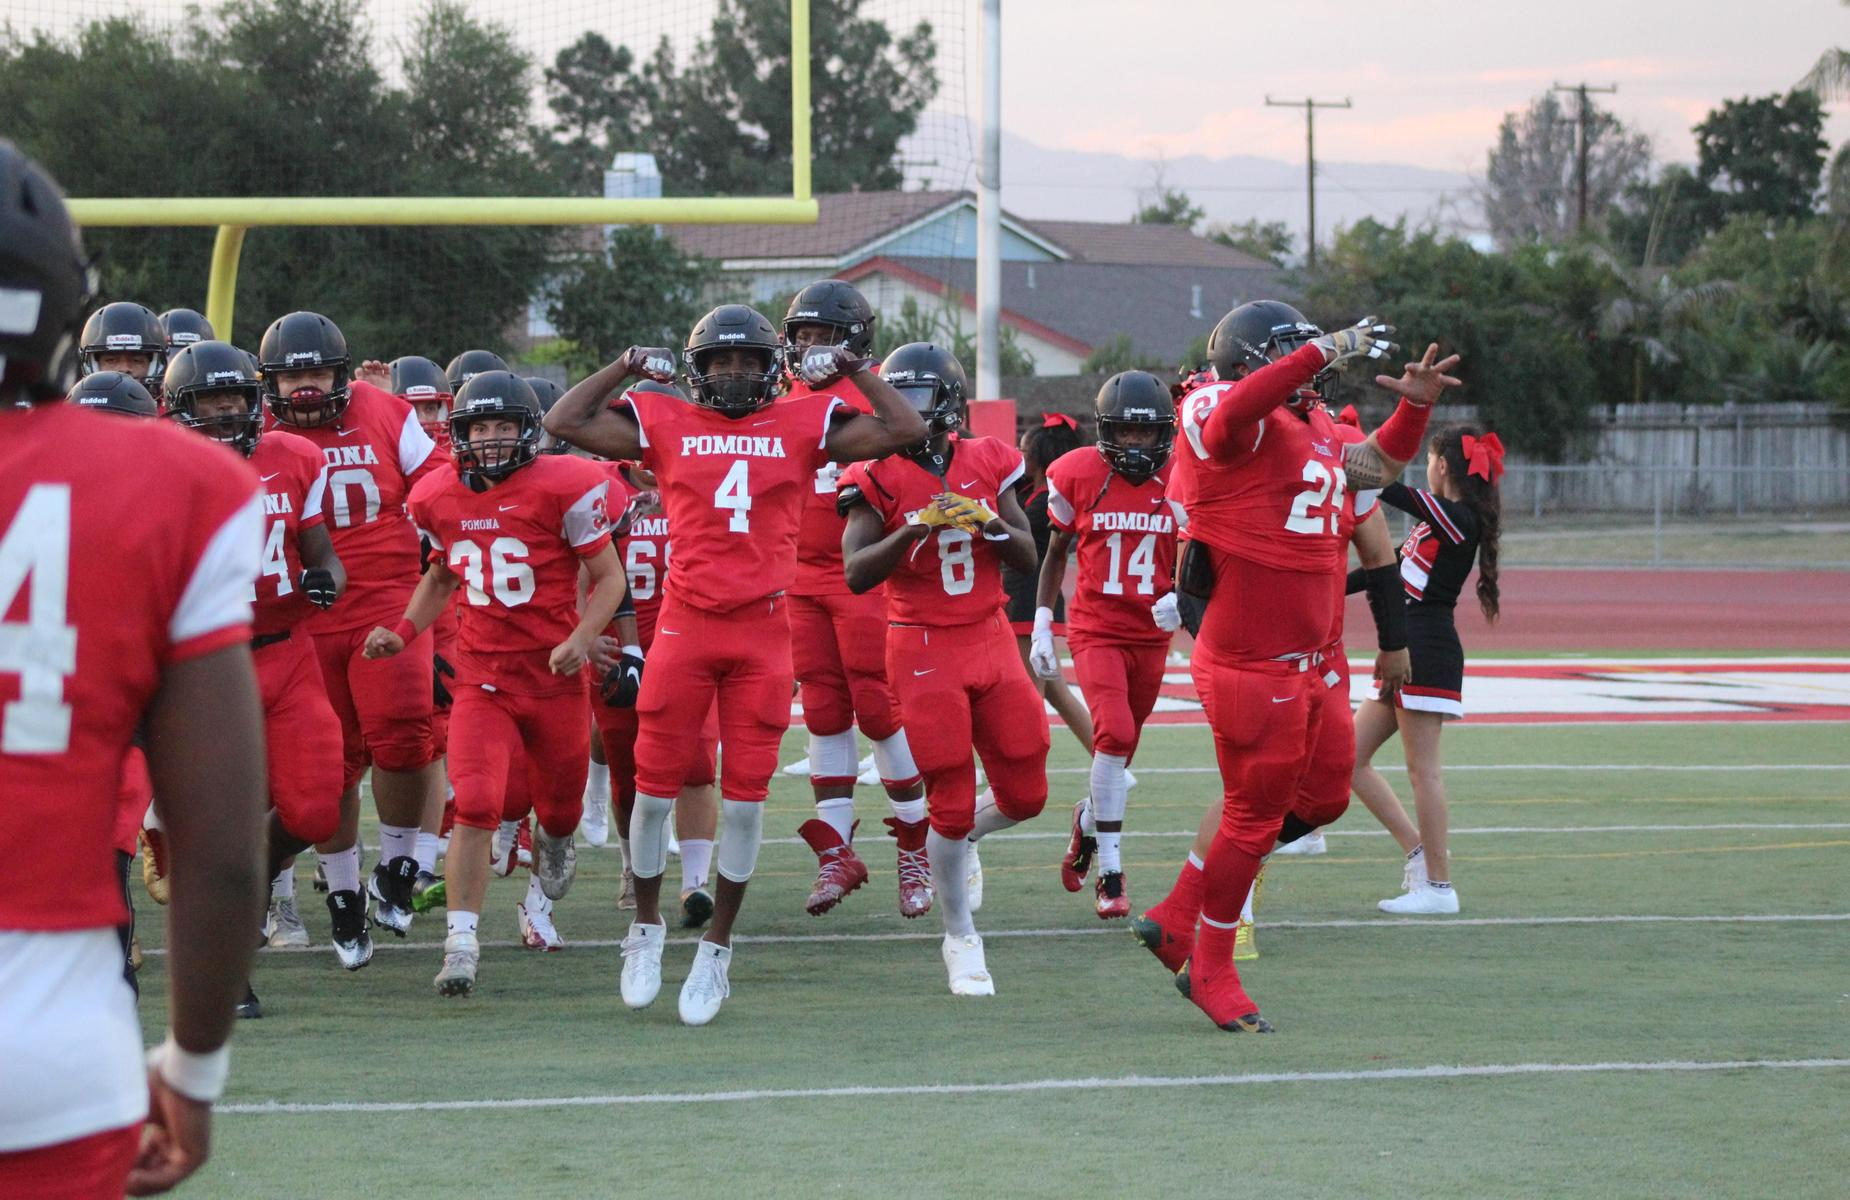 Pomona High School Varsity Football is in the CIF Playoffs! - Congratulations to the coach and all players on your athletic success! Show your support for our Red Devils, let's cheer them on to get that WIN! http://edl.io/n1119429